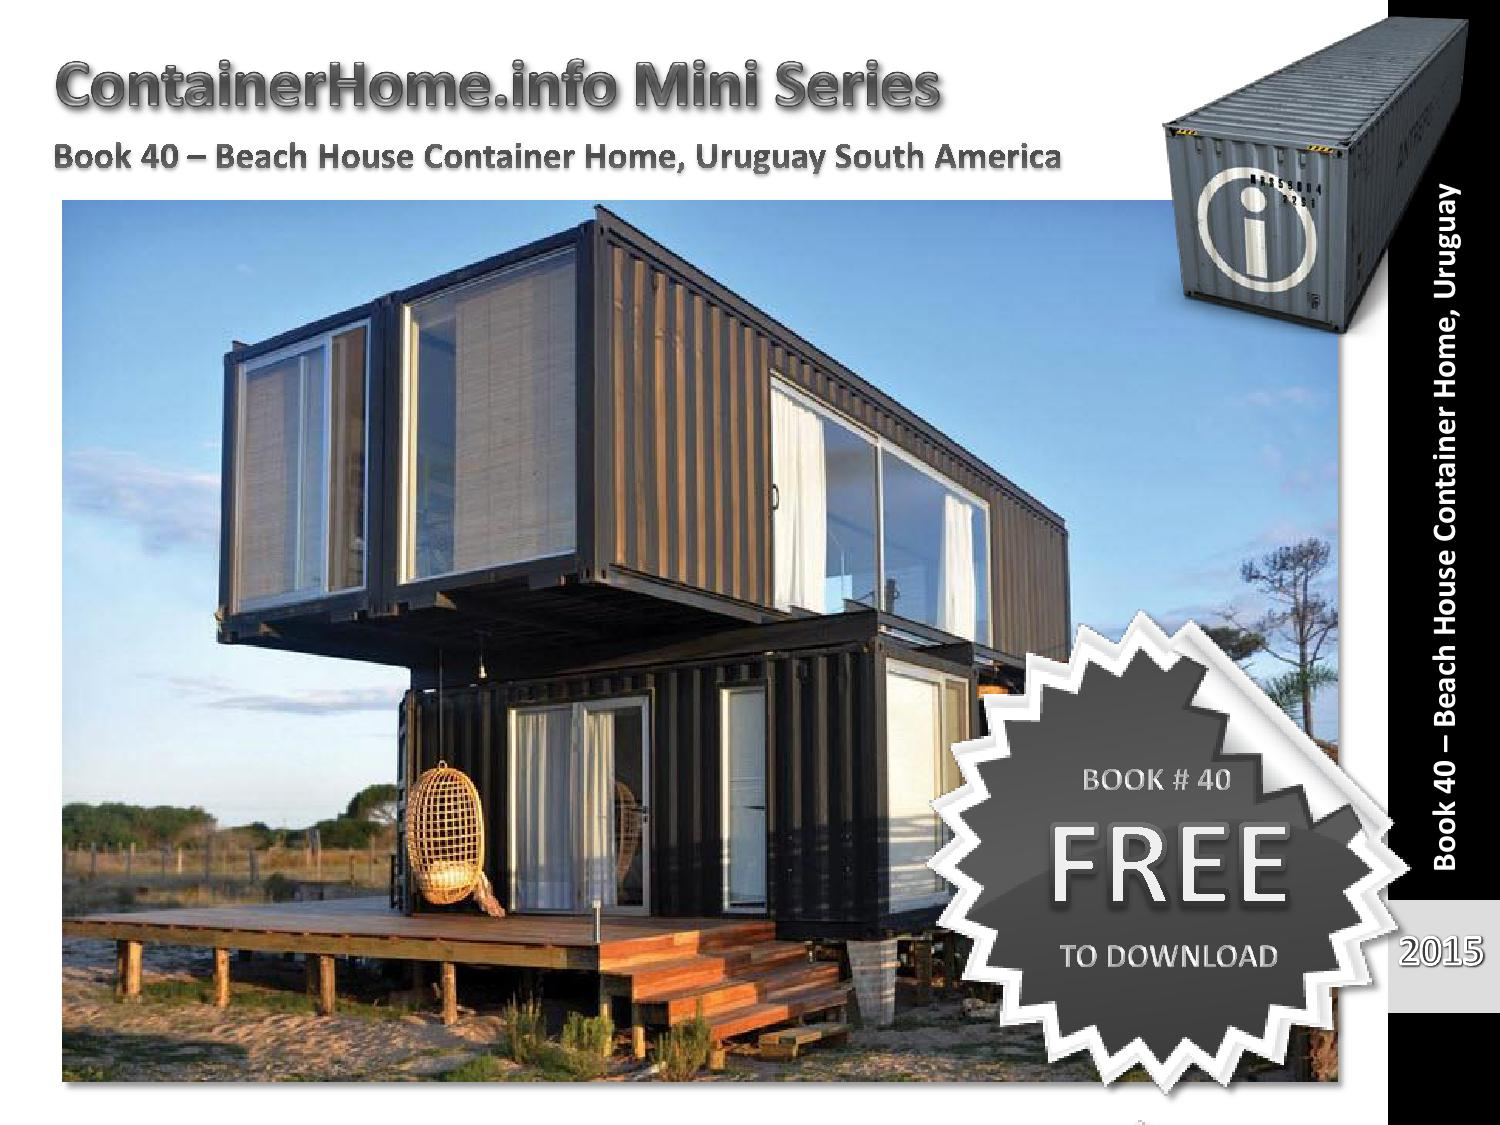 Shipping container homes book 40 by shippingcontainerhomes issuu - Bithcin shipping container house ii ...